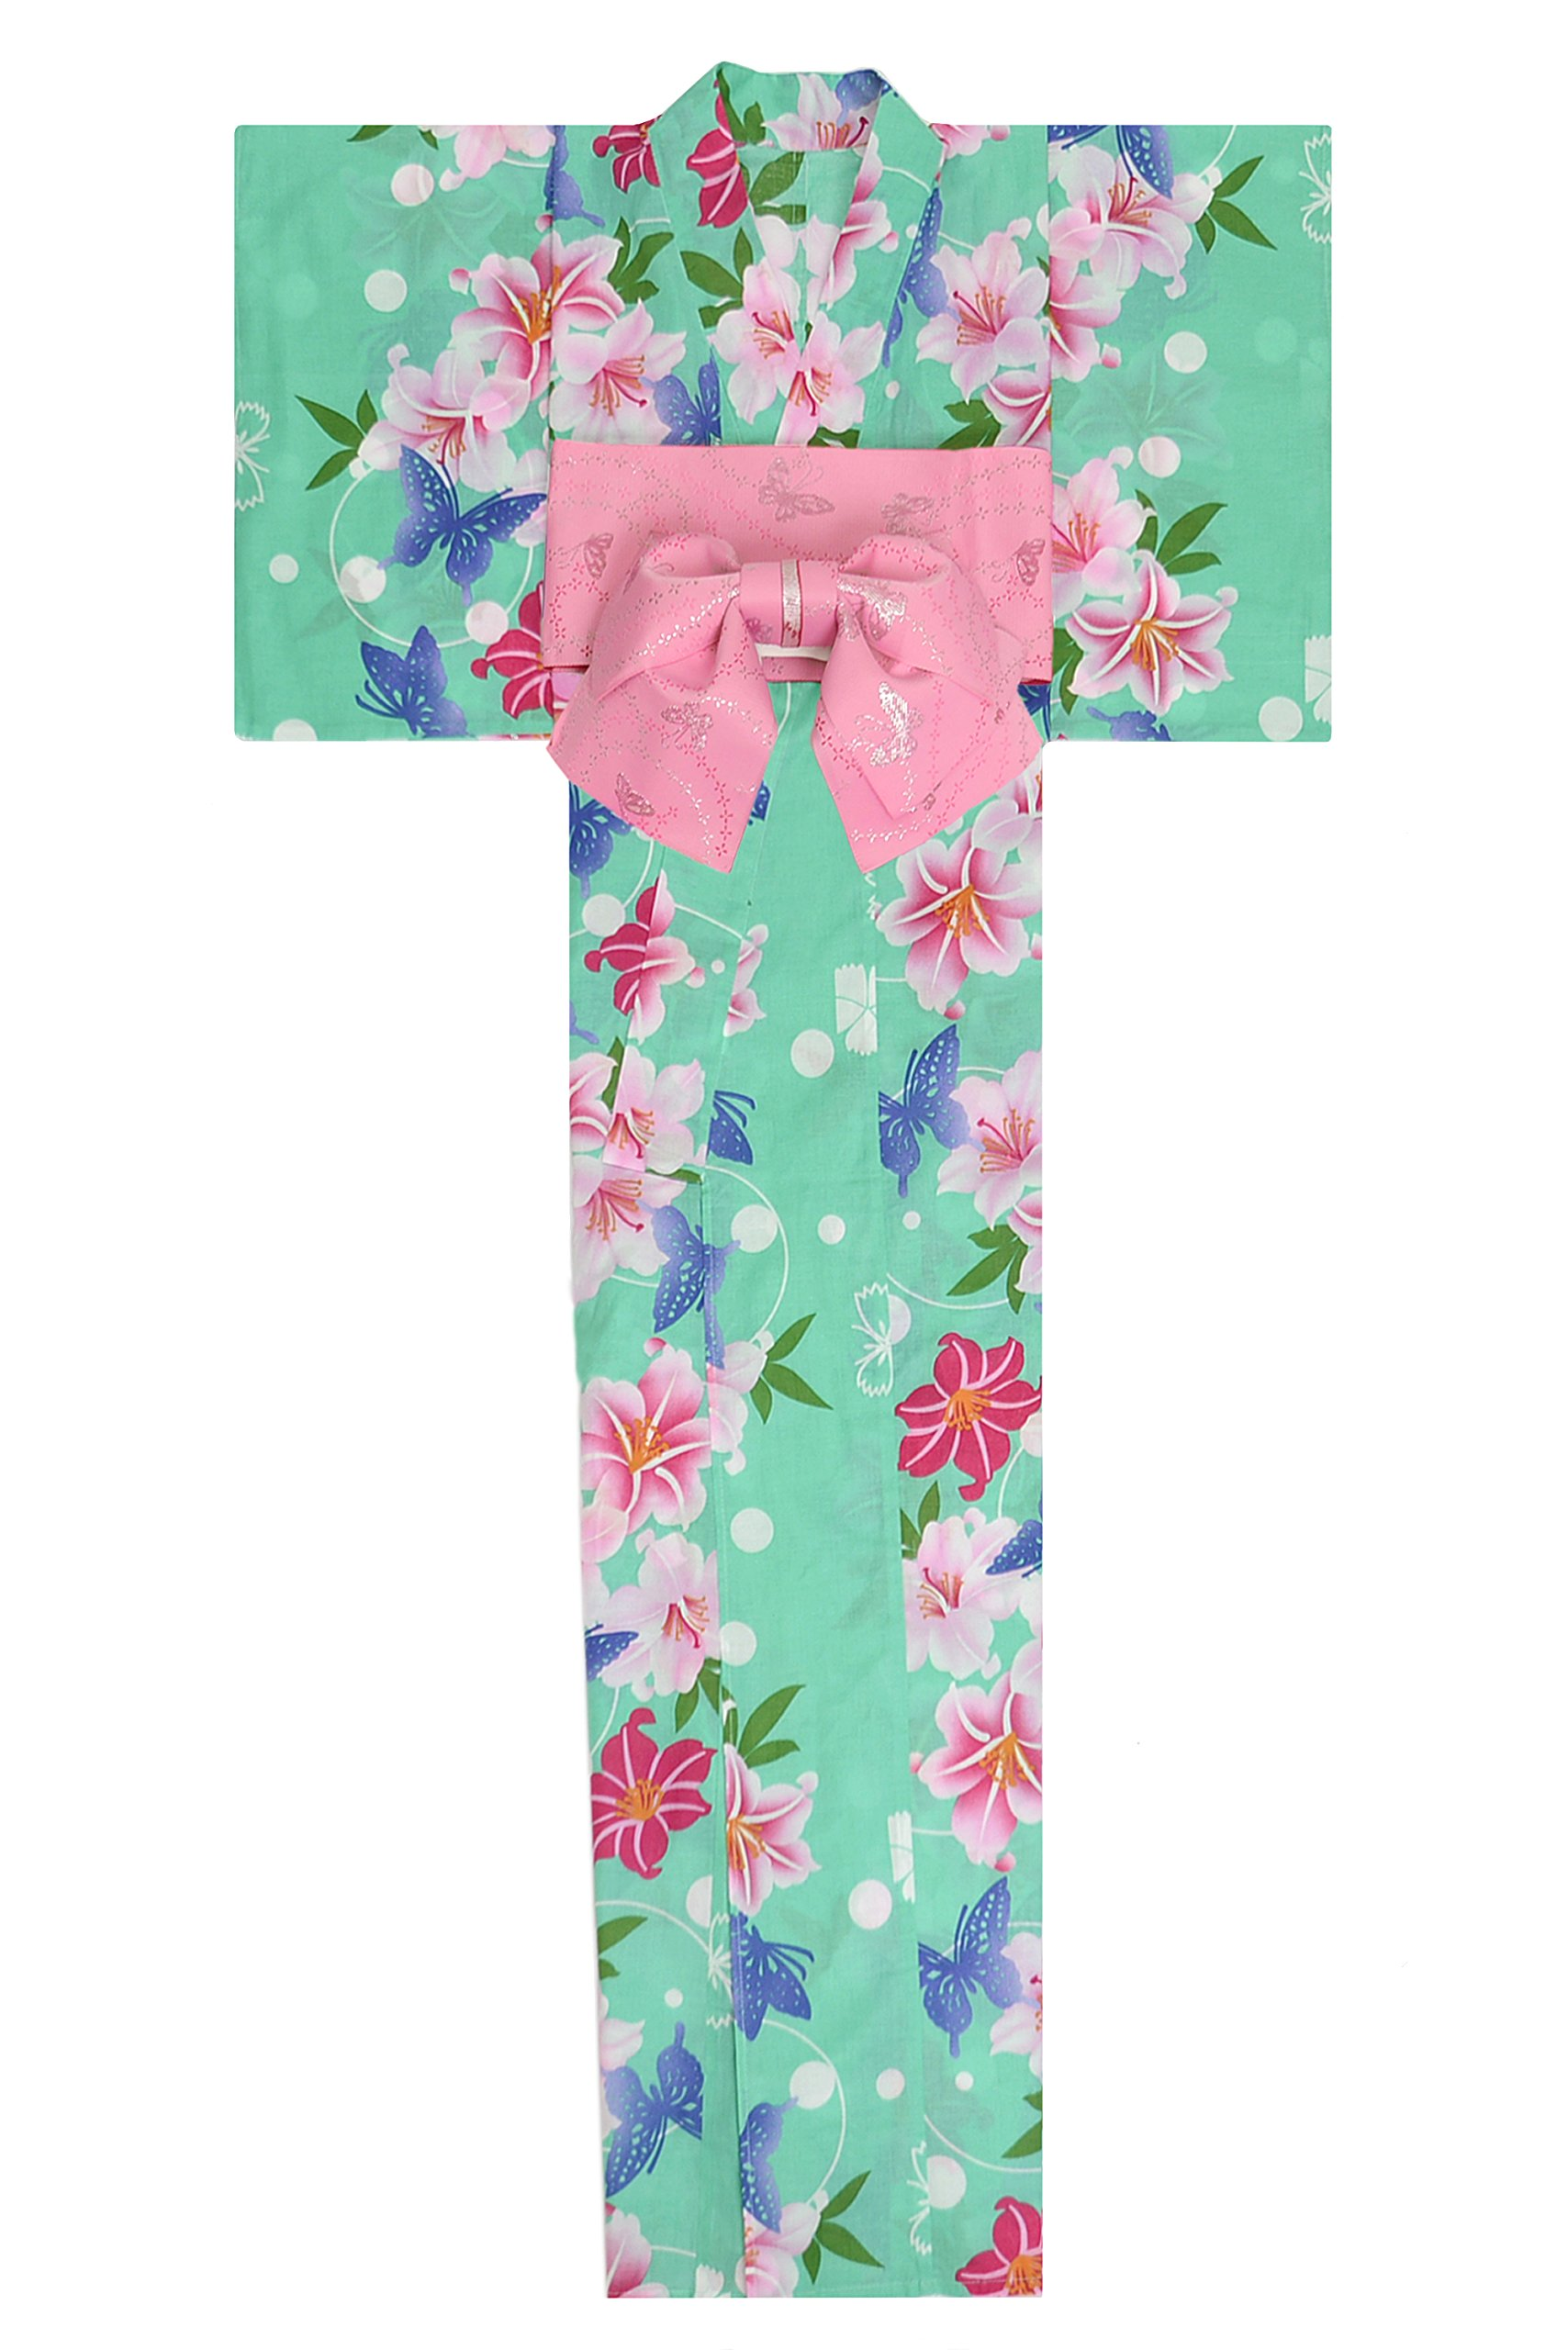 KimonoMode24 Women's Japanese Yukata And Easy Wearing Obi Set/ Flower and Butterfly Pattern Free Size Green